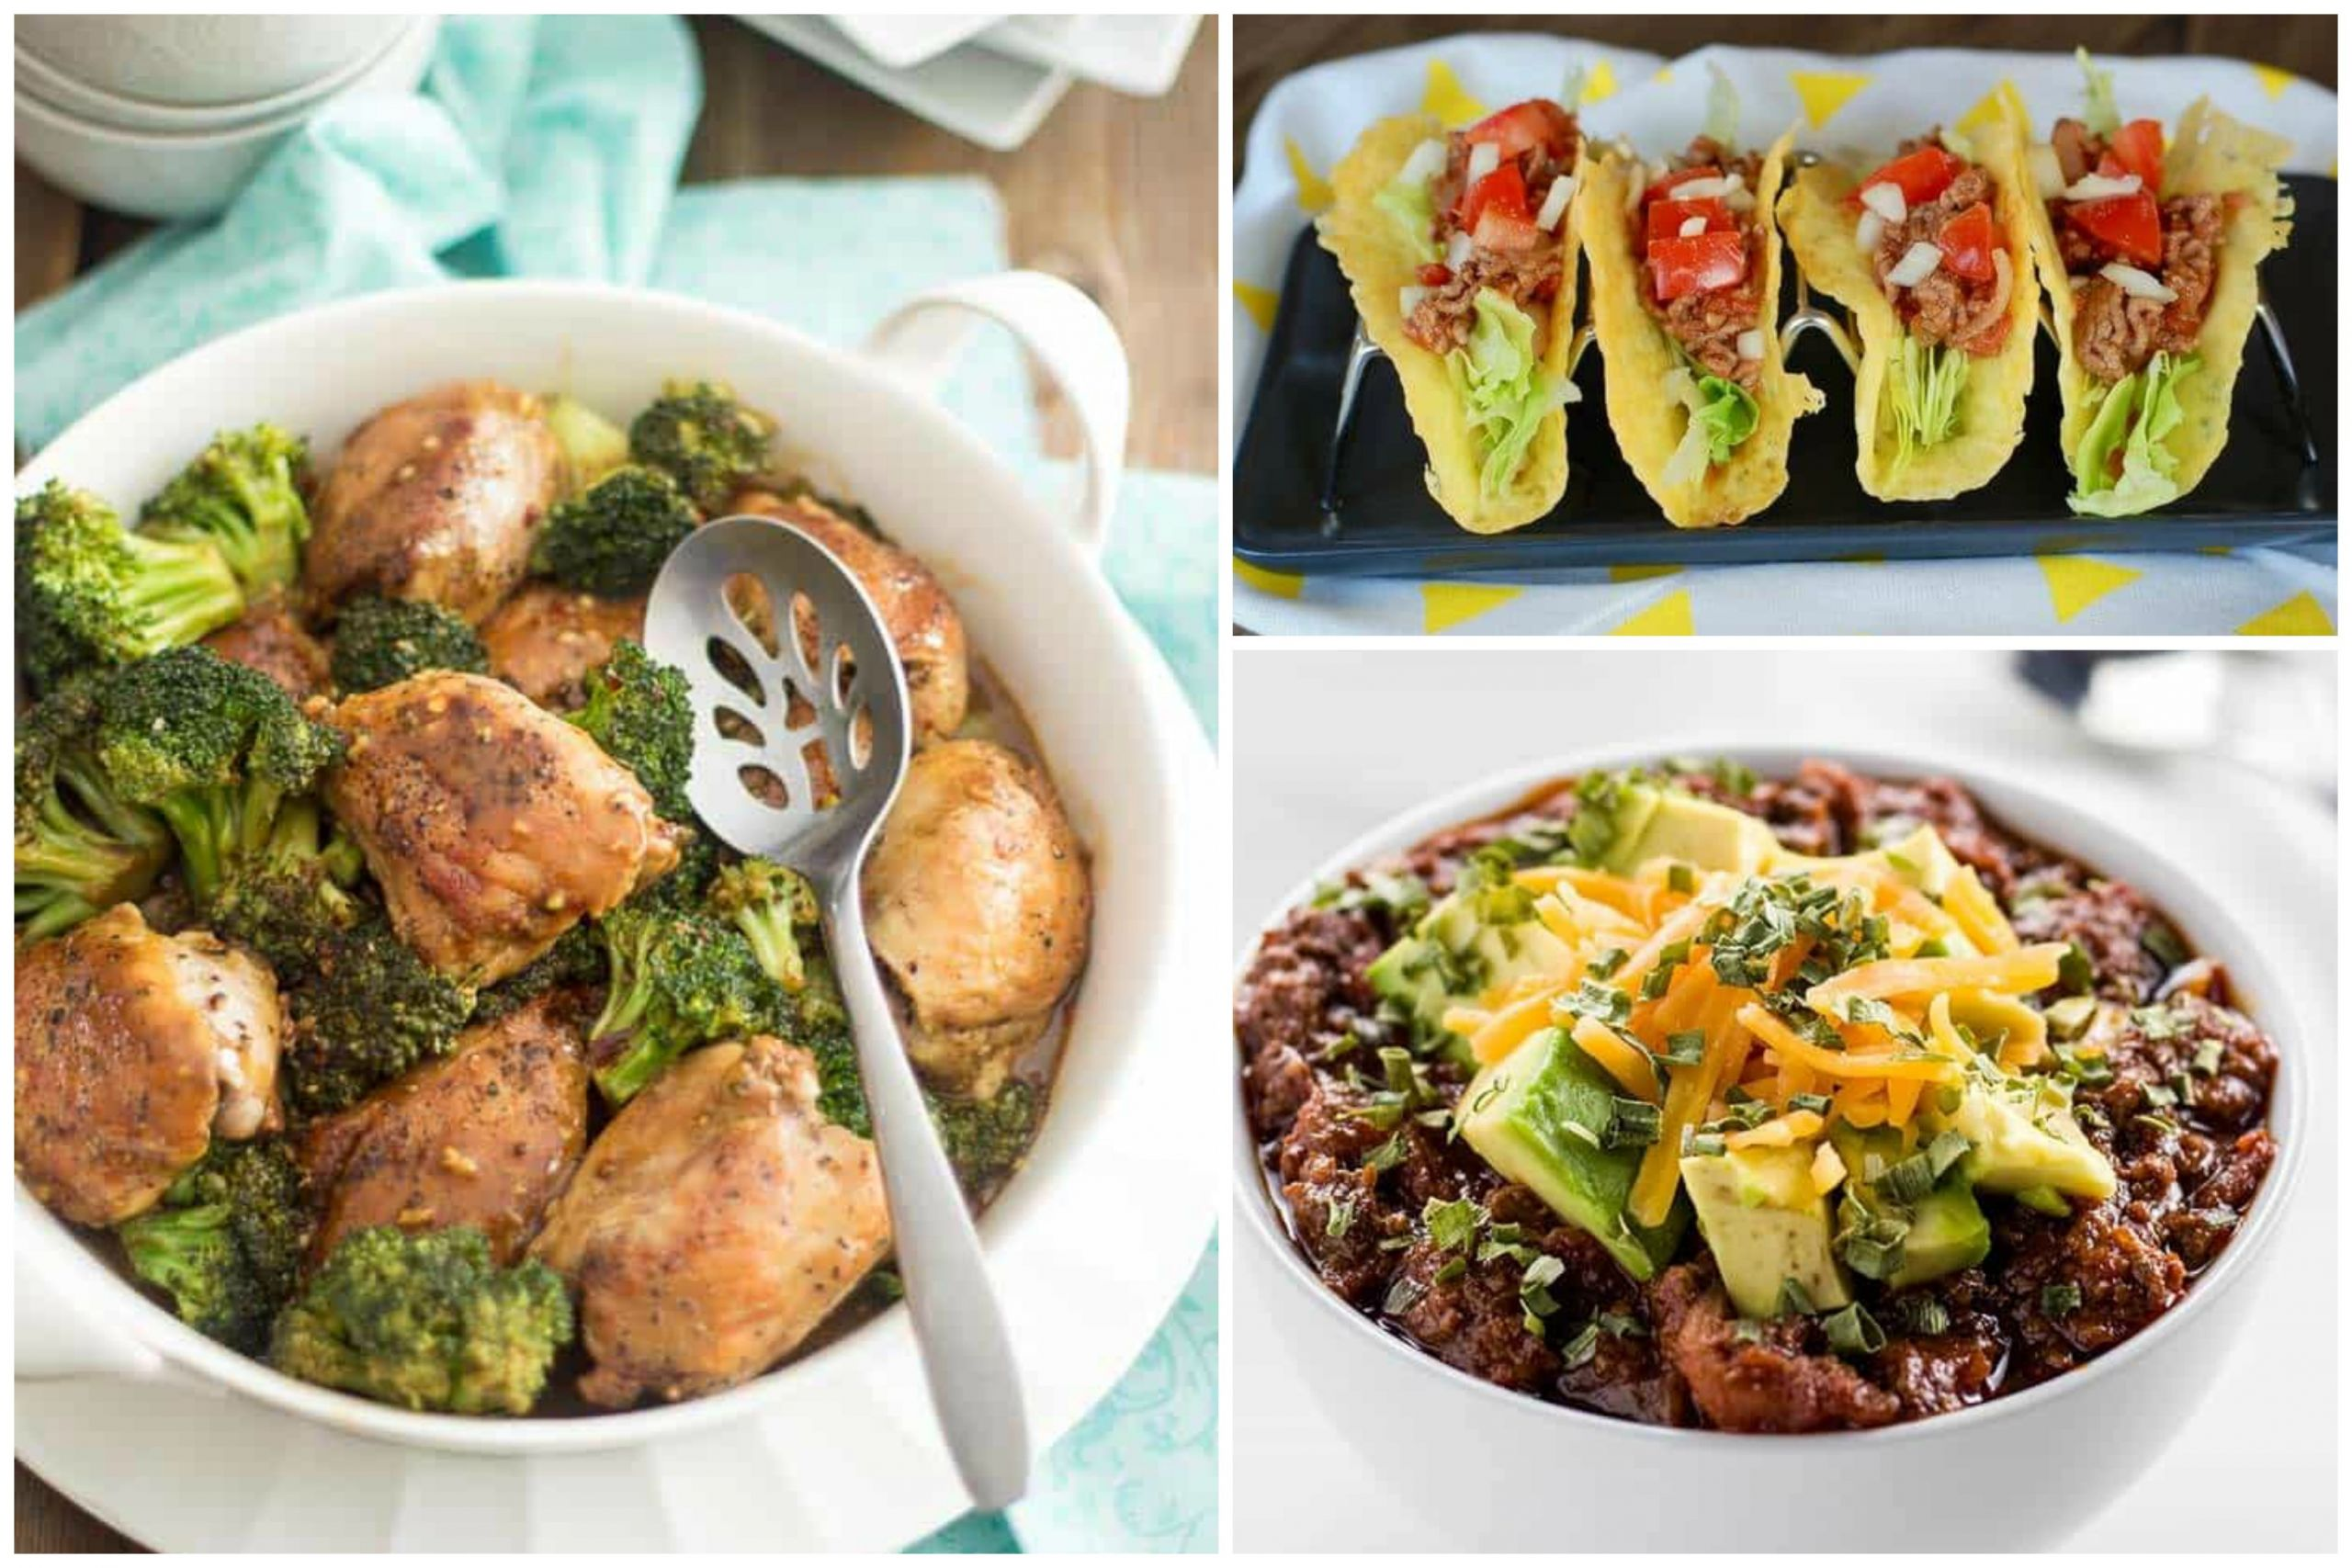 Low Carb Diet Recipes  Keto Recipes 11 Delicious Low Carb Meals to Help You Lose